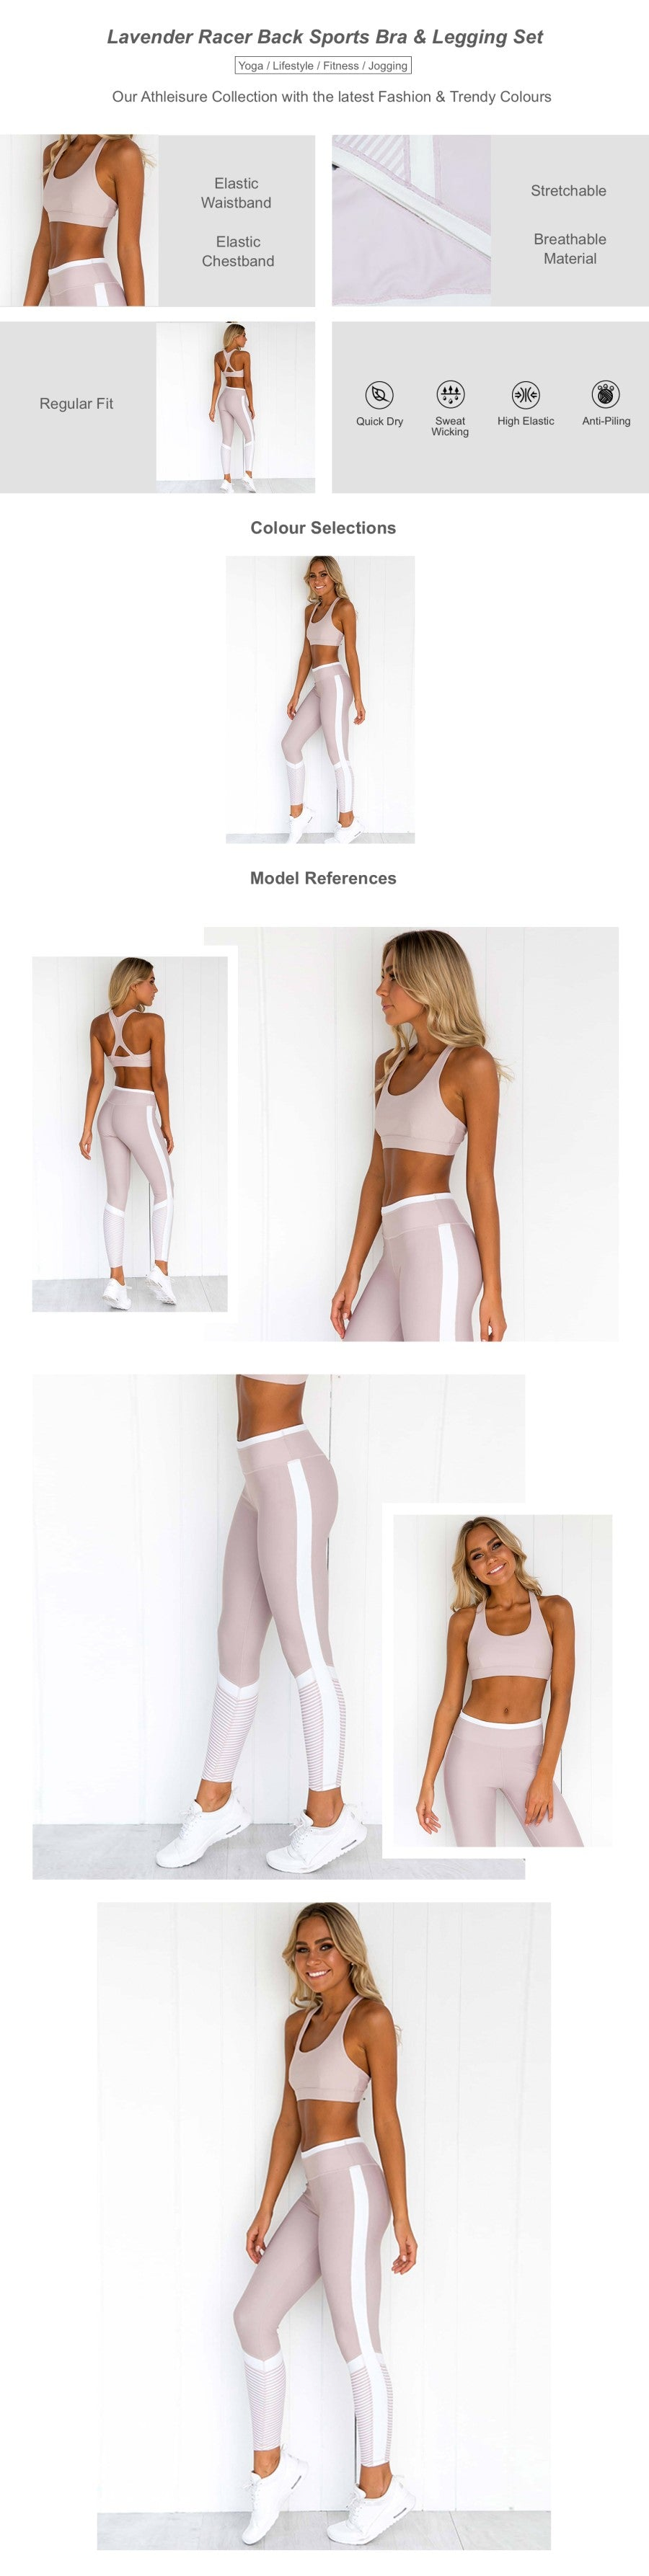 Lavender Racer Back Sports Bra & Legging Set